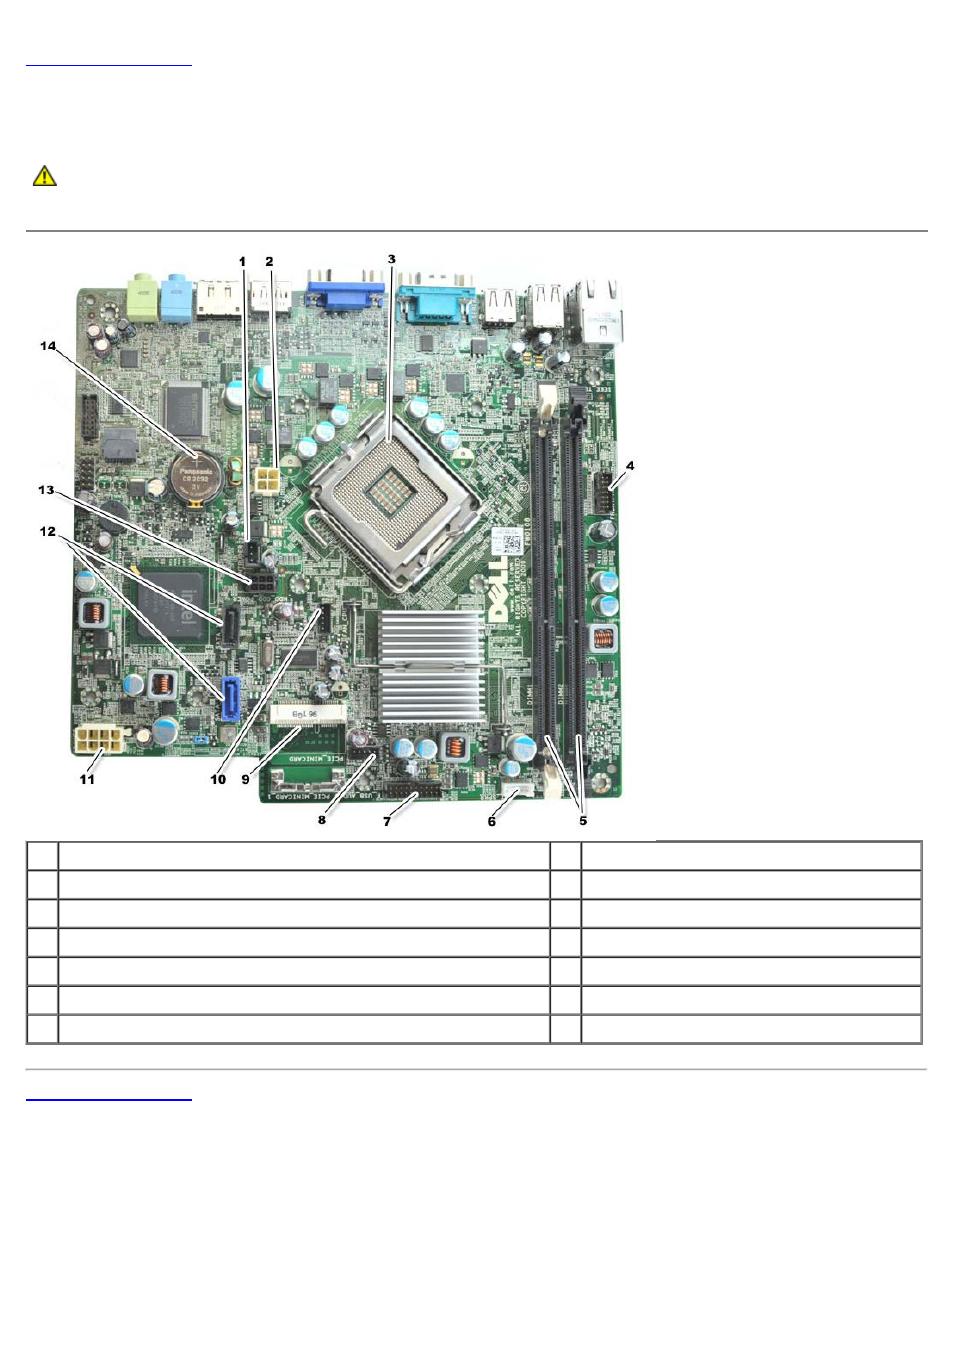 System board layout | Dell OptiPlex 780 User Manual | Page 8 ... on inside computer mouse, inside computer motherboard, inside computer rom, inside computer schematic, inside computer working, inside computer stuff, inside computer poster, inside computer tower cables, inside computer sound card drivers, inside computer tower power supply, inside computer display, inside computer parts,